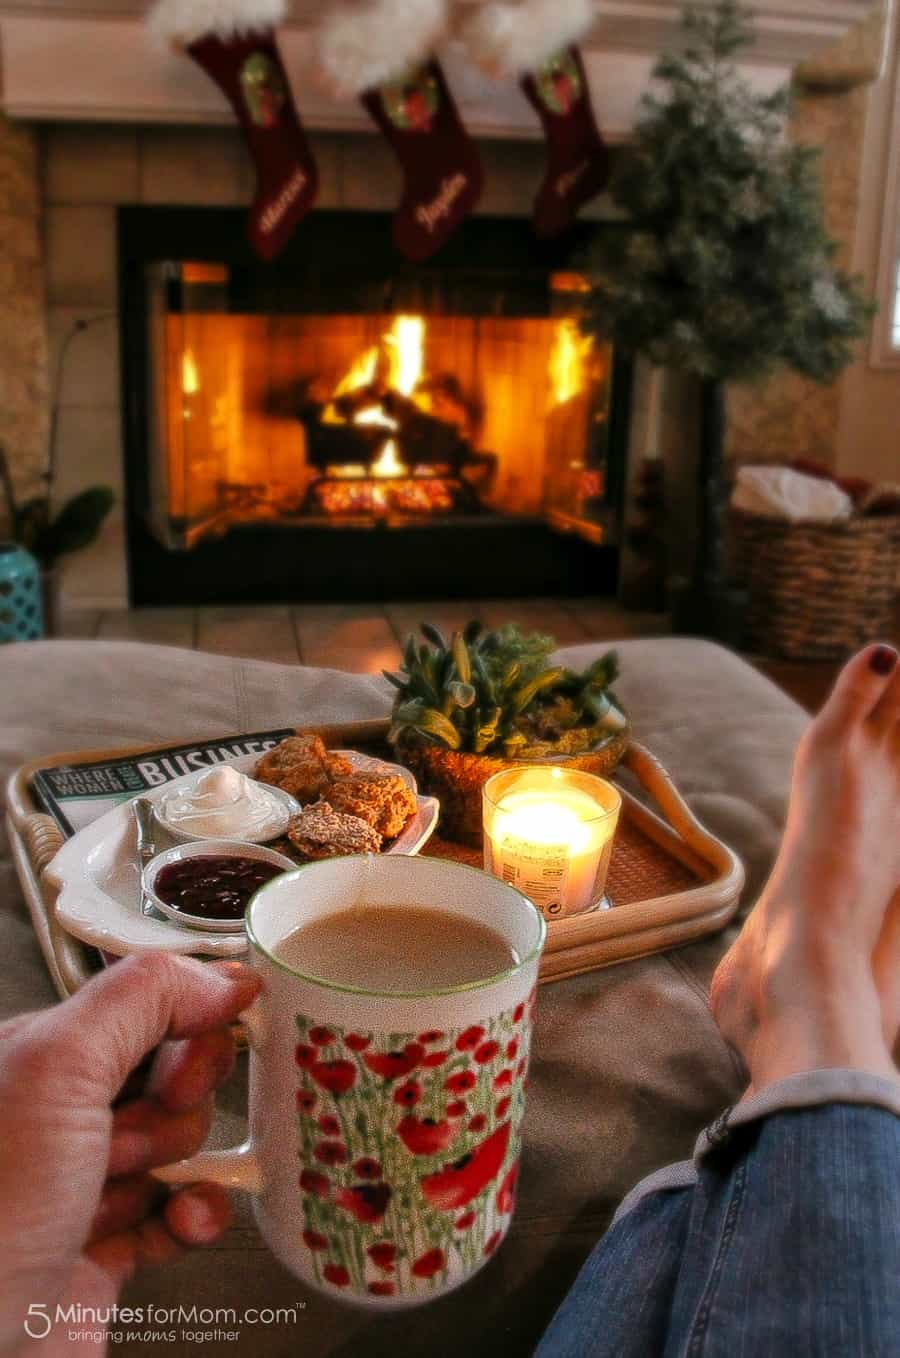 national-hot-tea-day-is-celebrated-on-january-12-2017